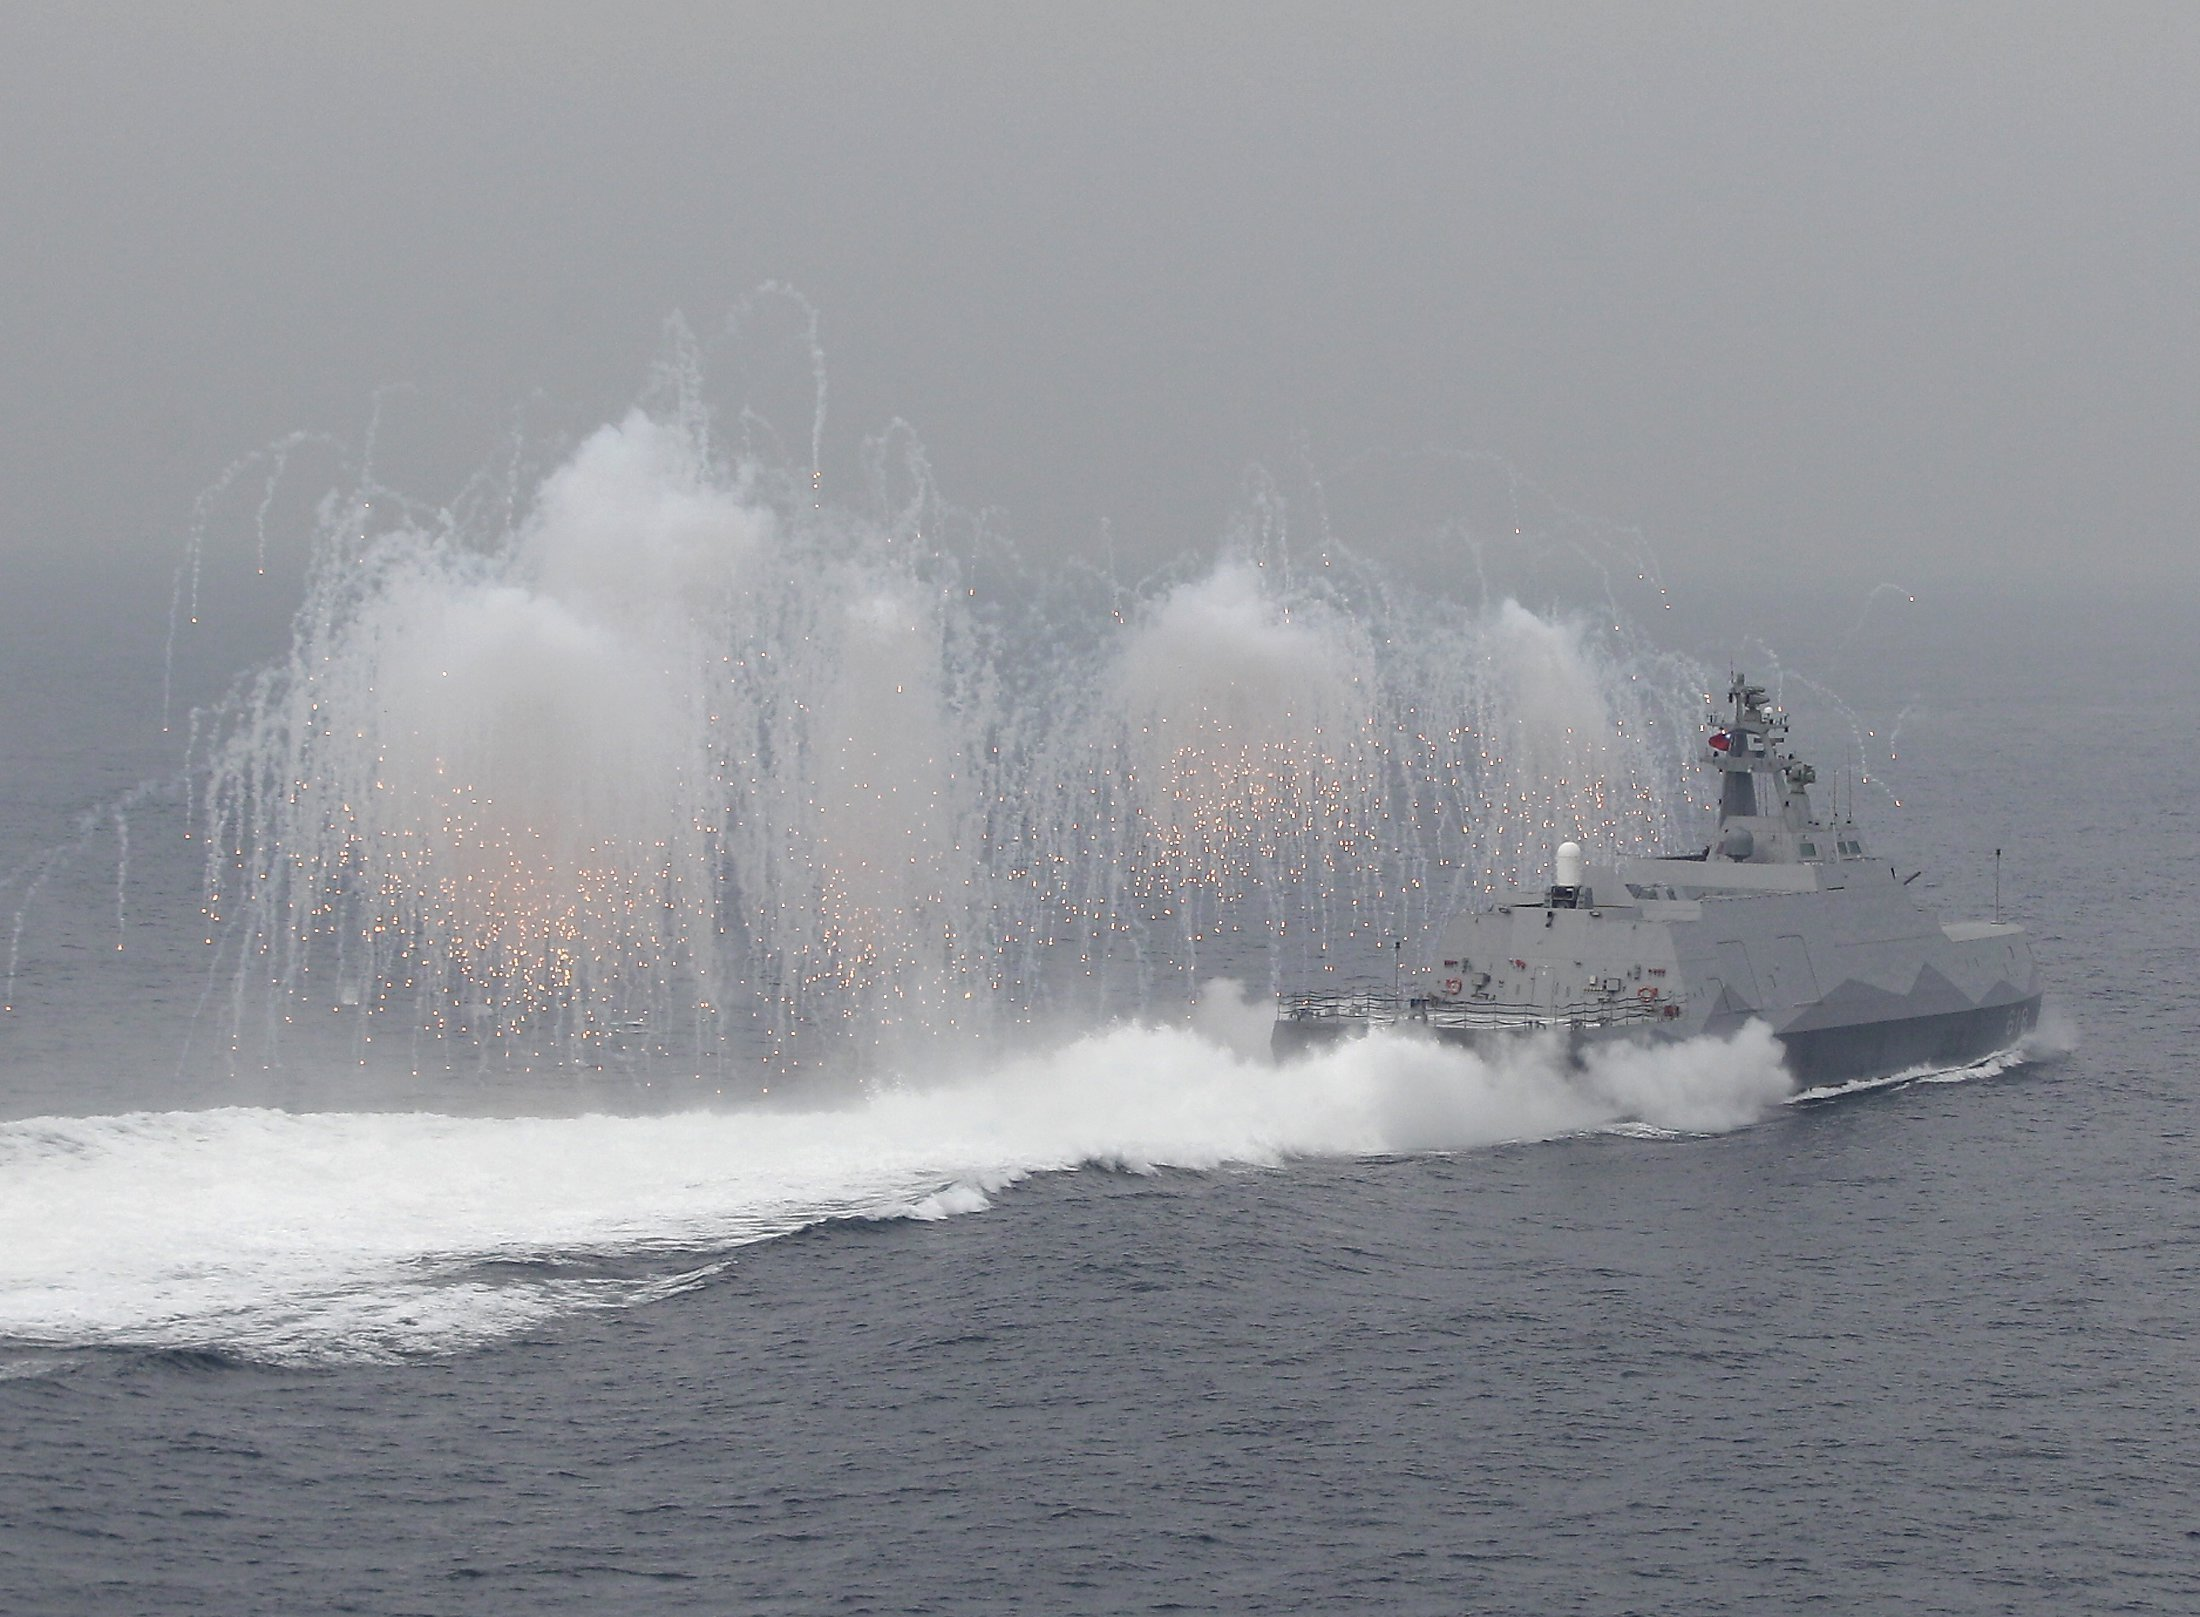 Flares are set off from a Taiwan navy missile ship.